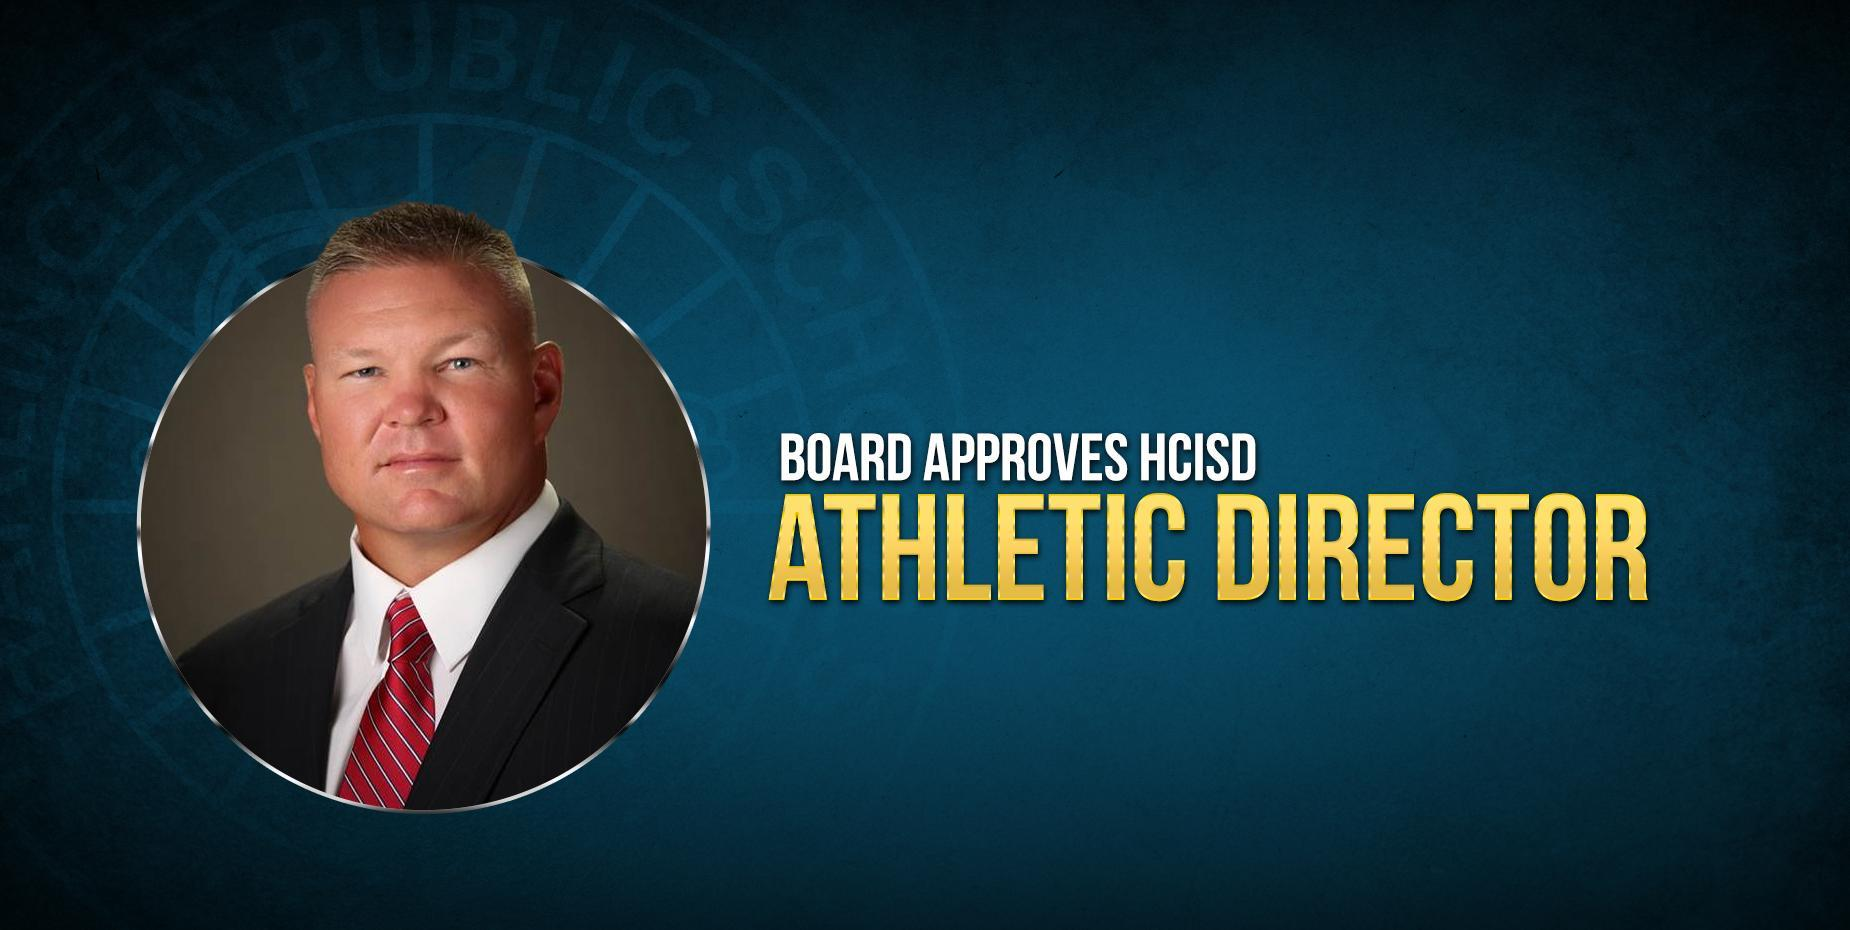 New athletic director's photo next to text